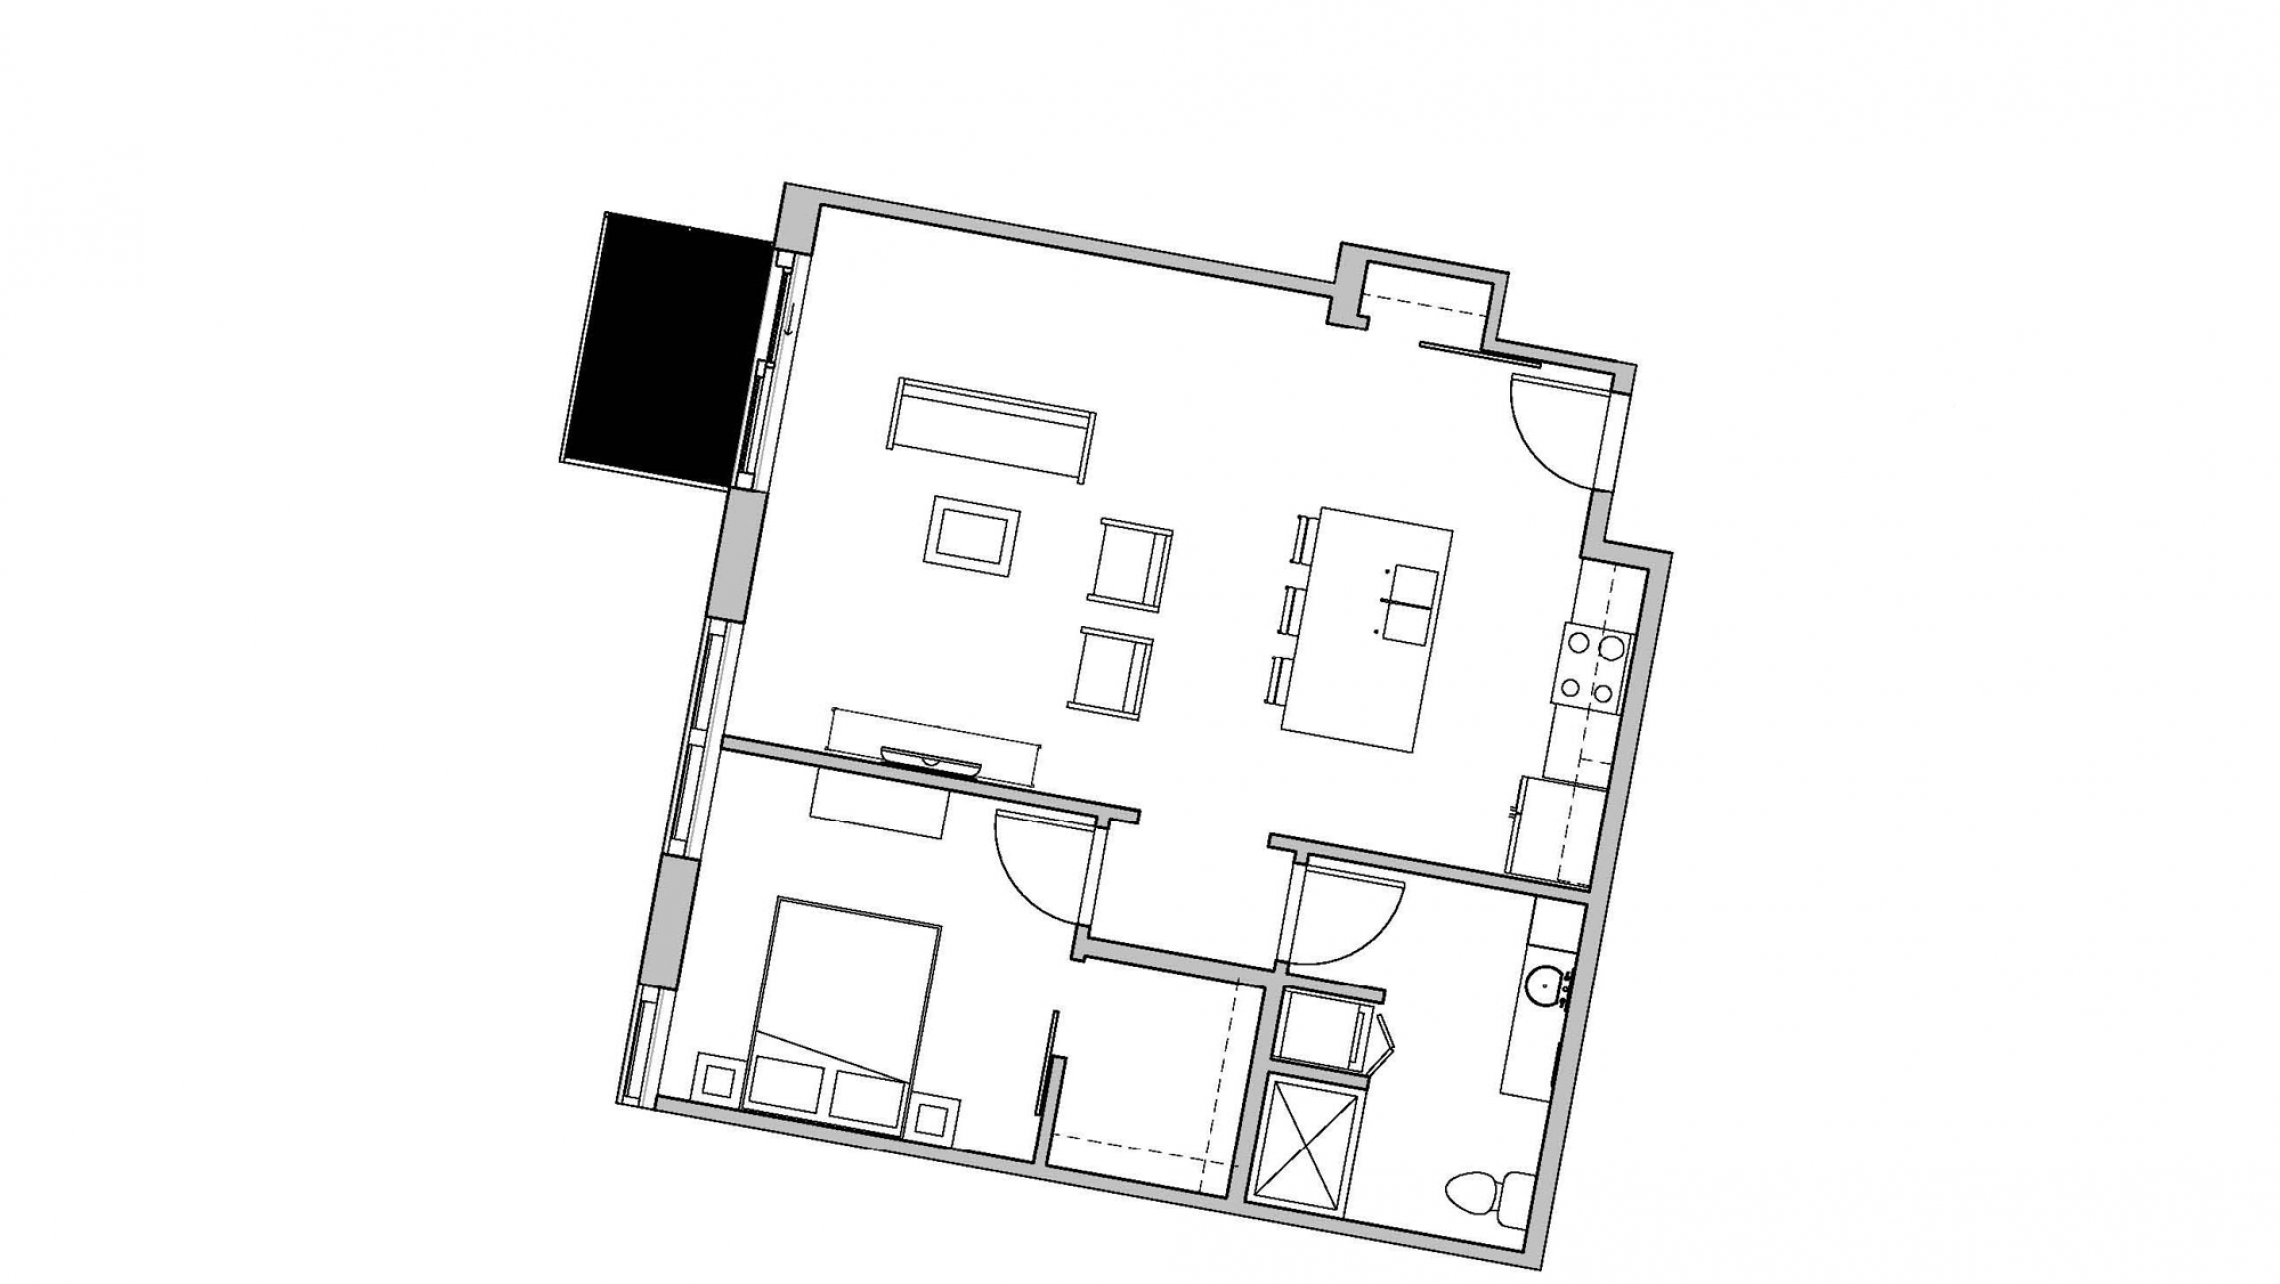 ULI Seven27 533 - One Bedroom, One Bathroom